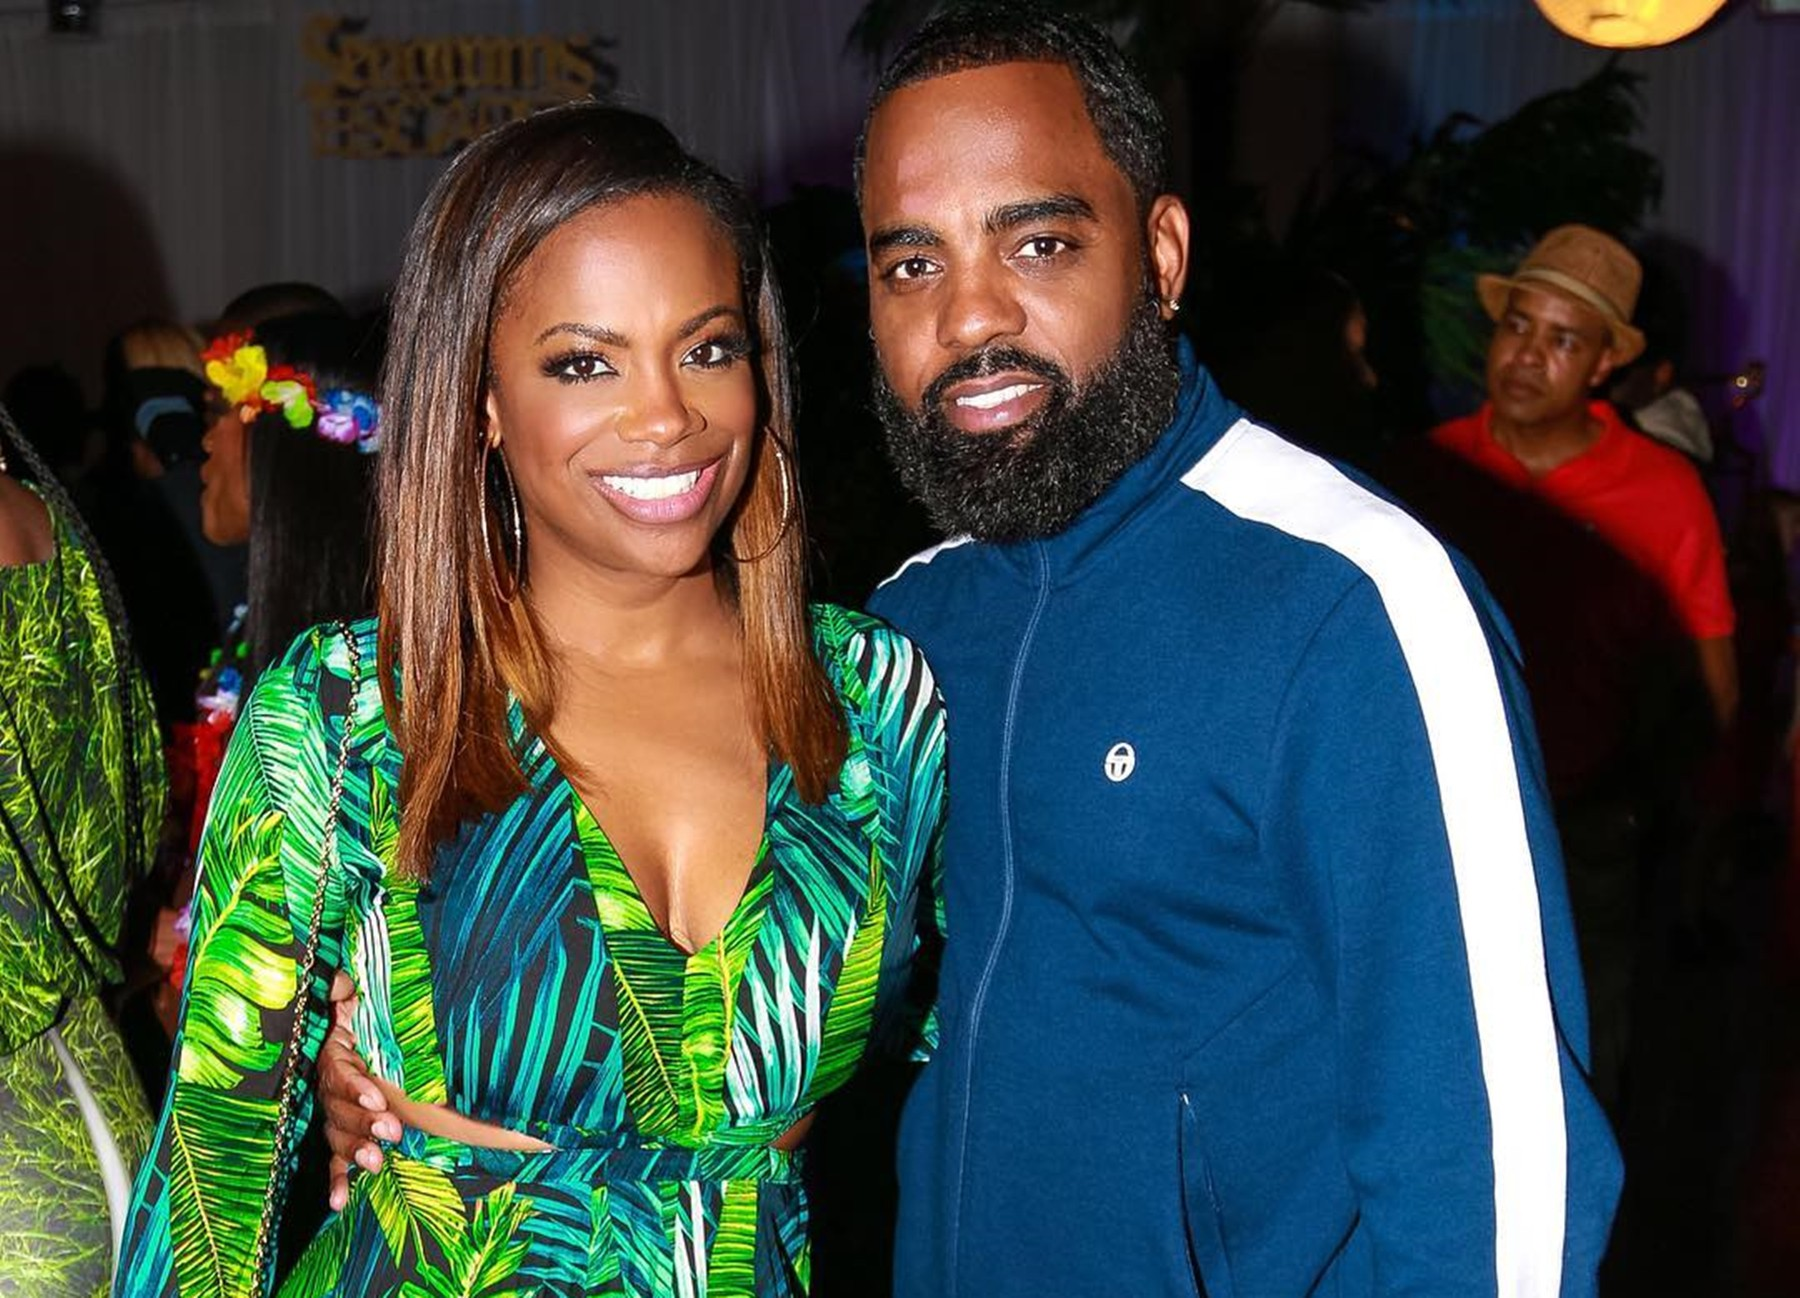 """""""kandi-burruss-describes-her-love-with-todd-tucker-with-a-message-on-social-media-tiny-harris-is-here-for-it-and-fans-wish-them-a-happy-anniversary"""""""